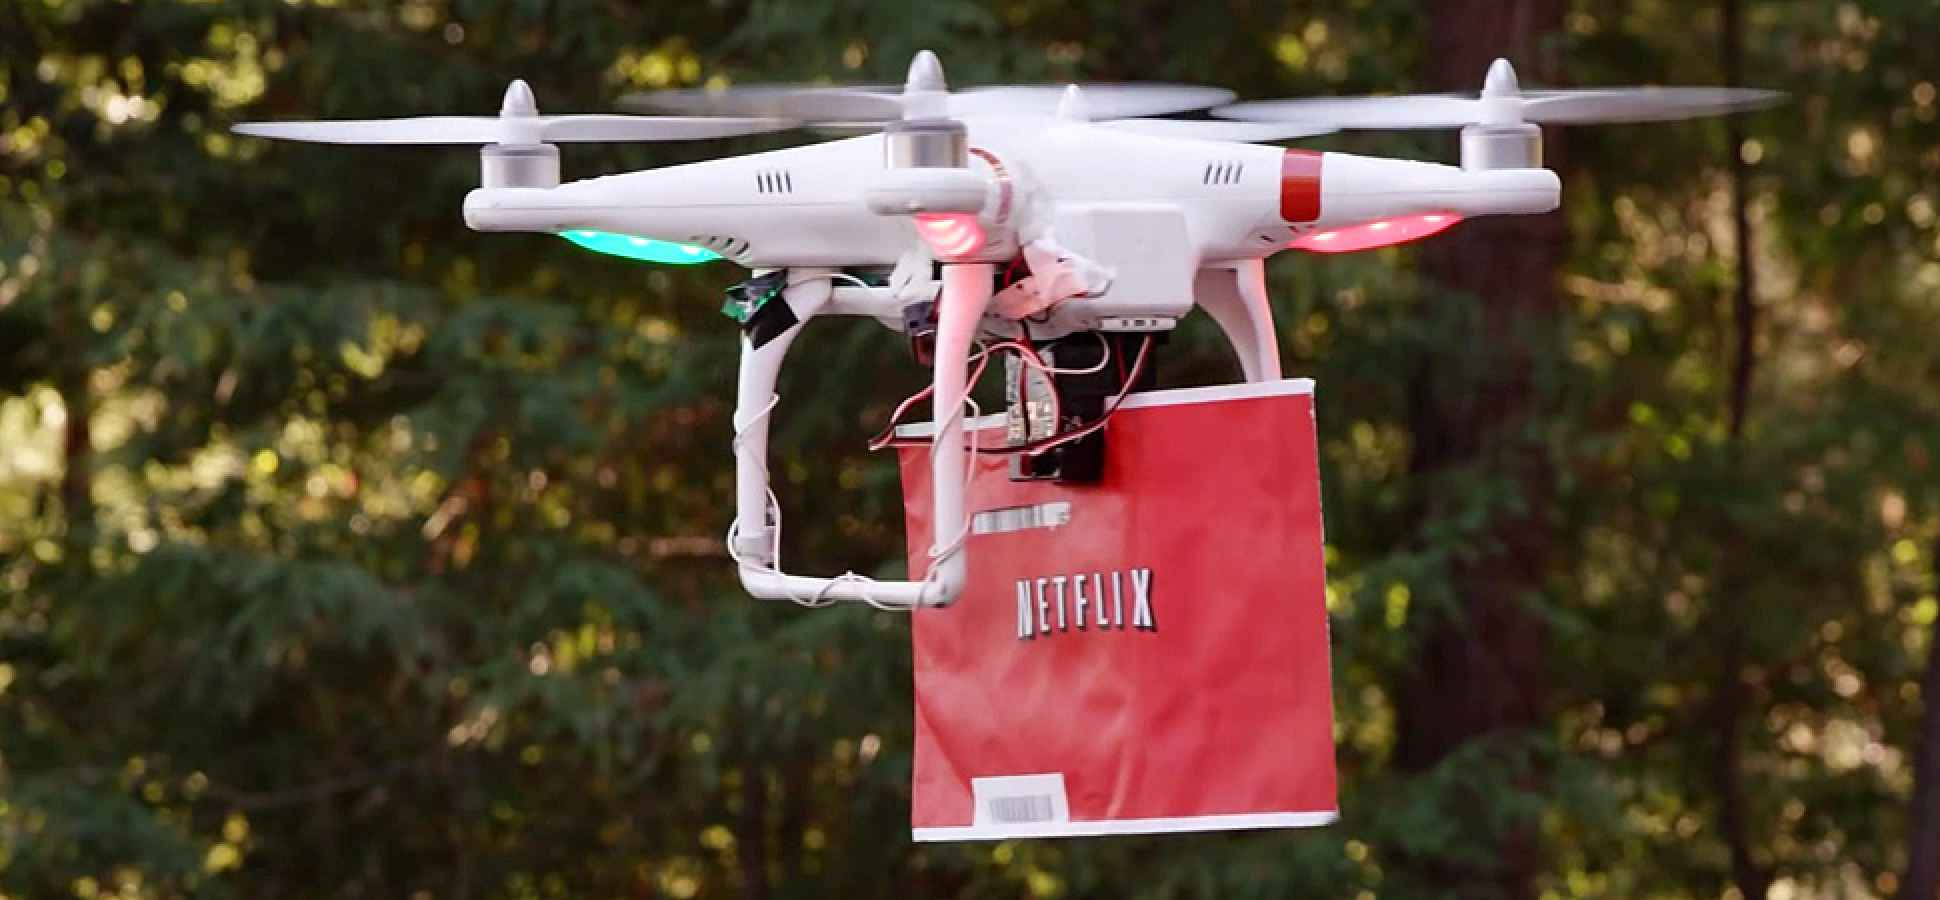 Netflix Drone 2 Home is Way More Fun Than Amazon's Version